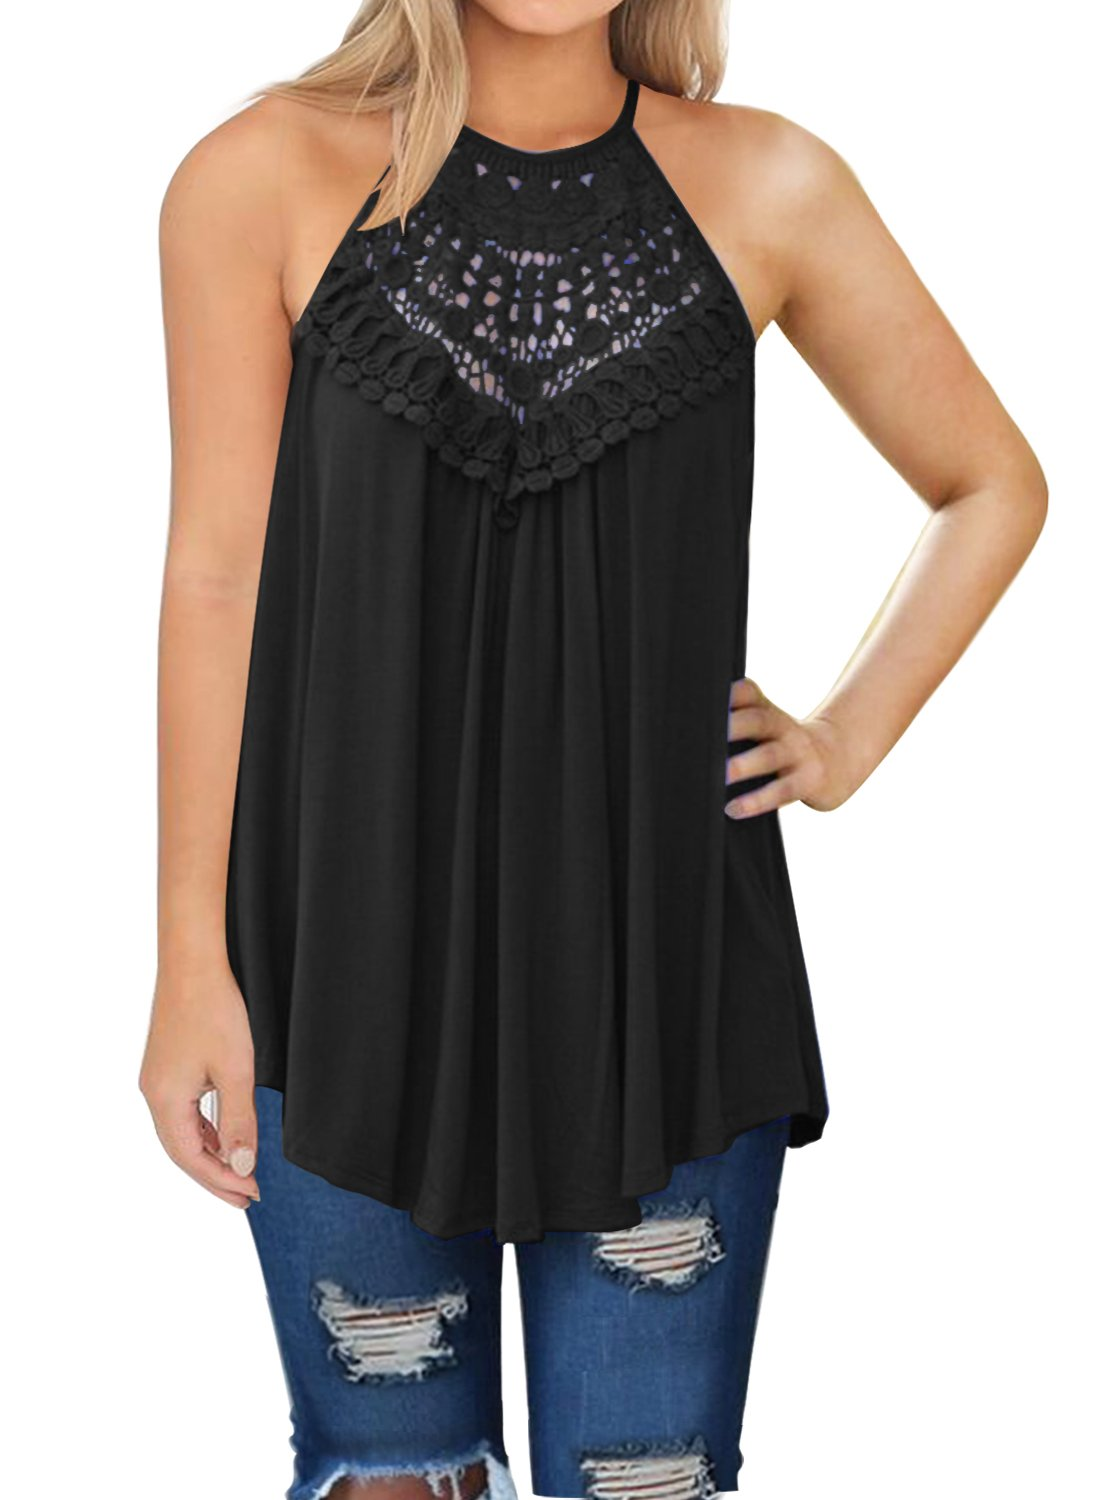 MIHOLL Womens Summer Casual Sleeveless Tops Lace Flowy Loose Shirts Tank Tops (Black, XX-Large)